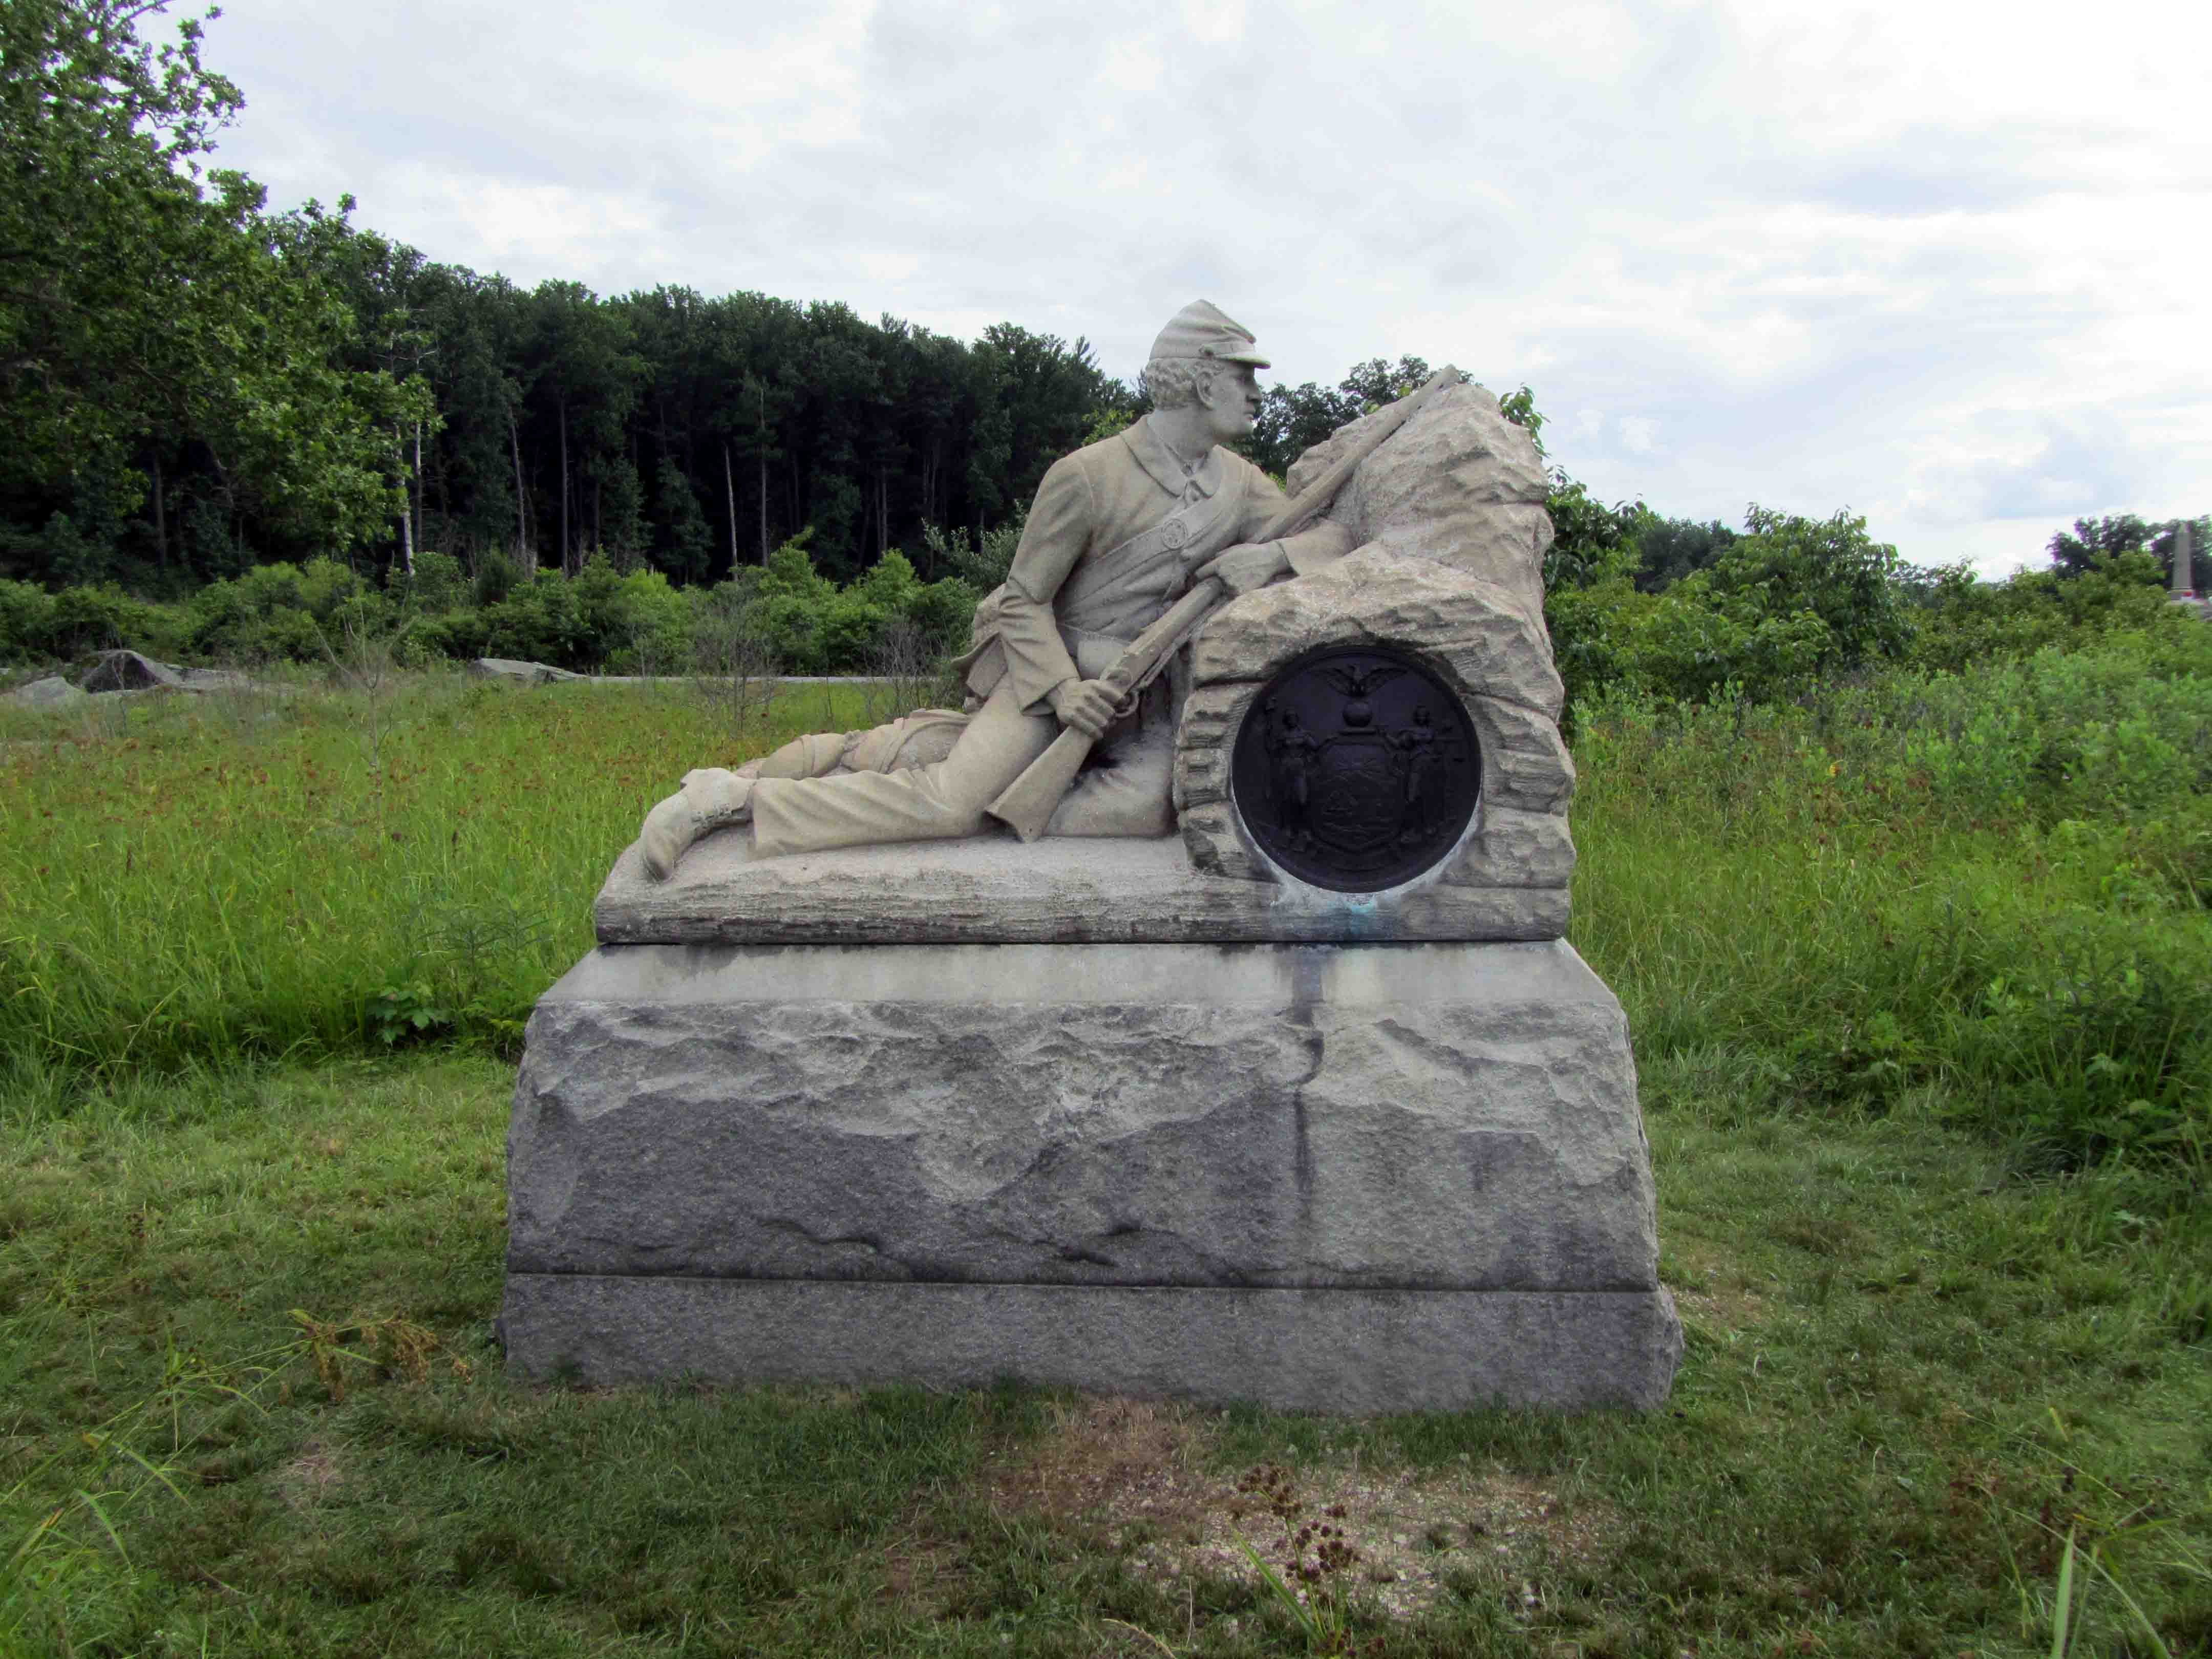 40th New York Infantry Monument (Picture 1)